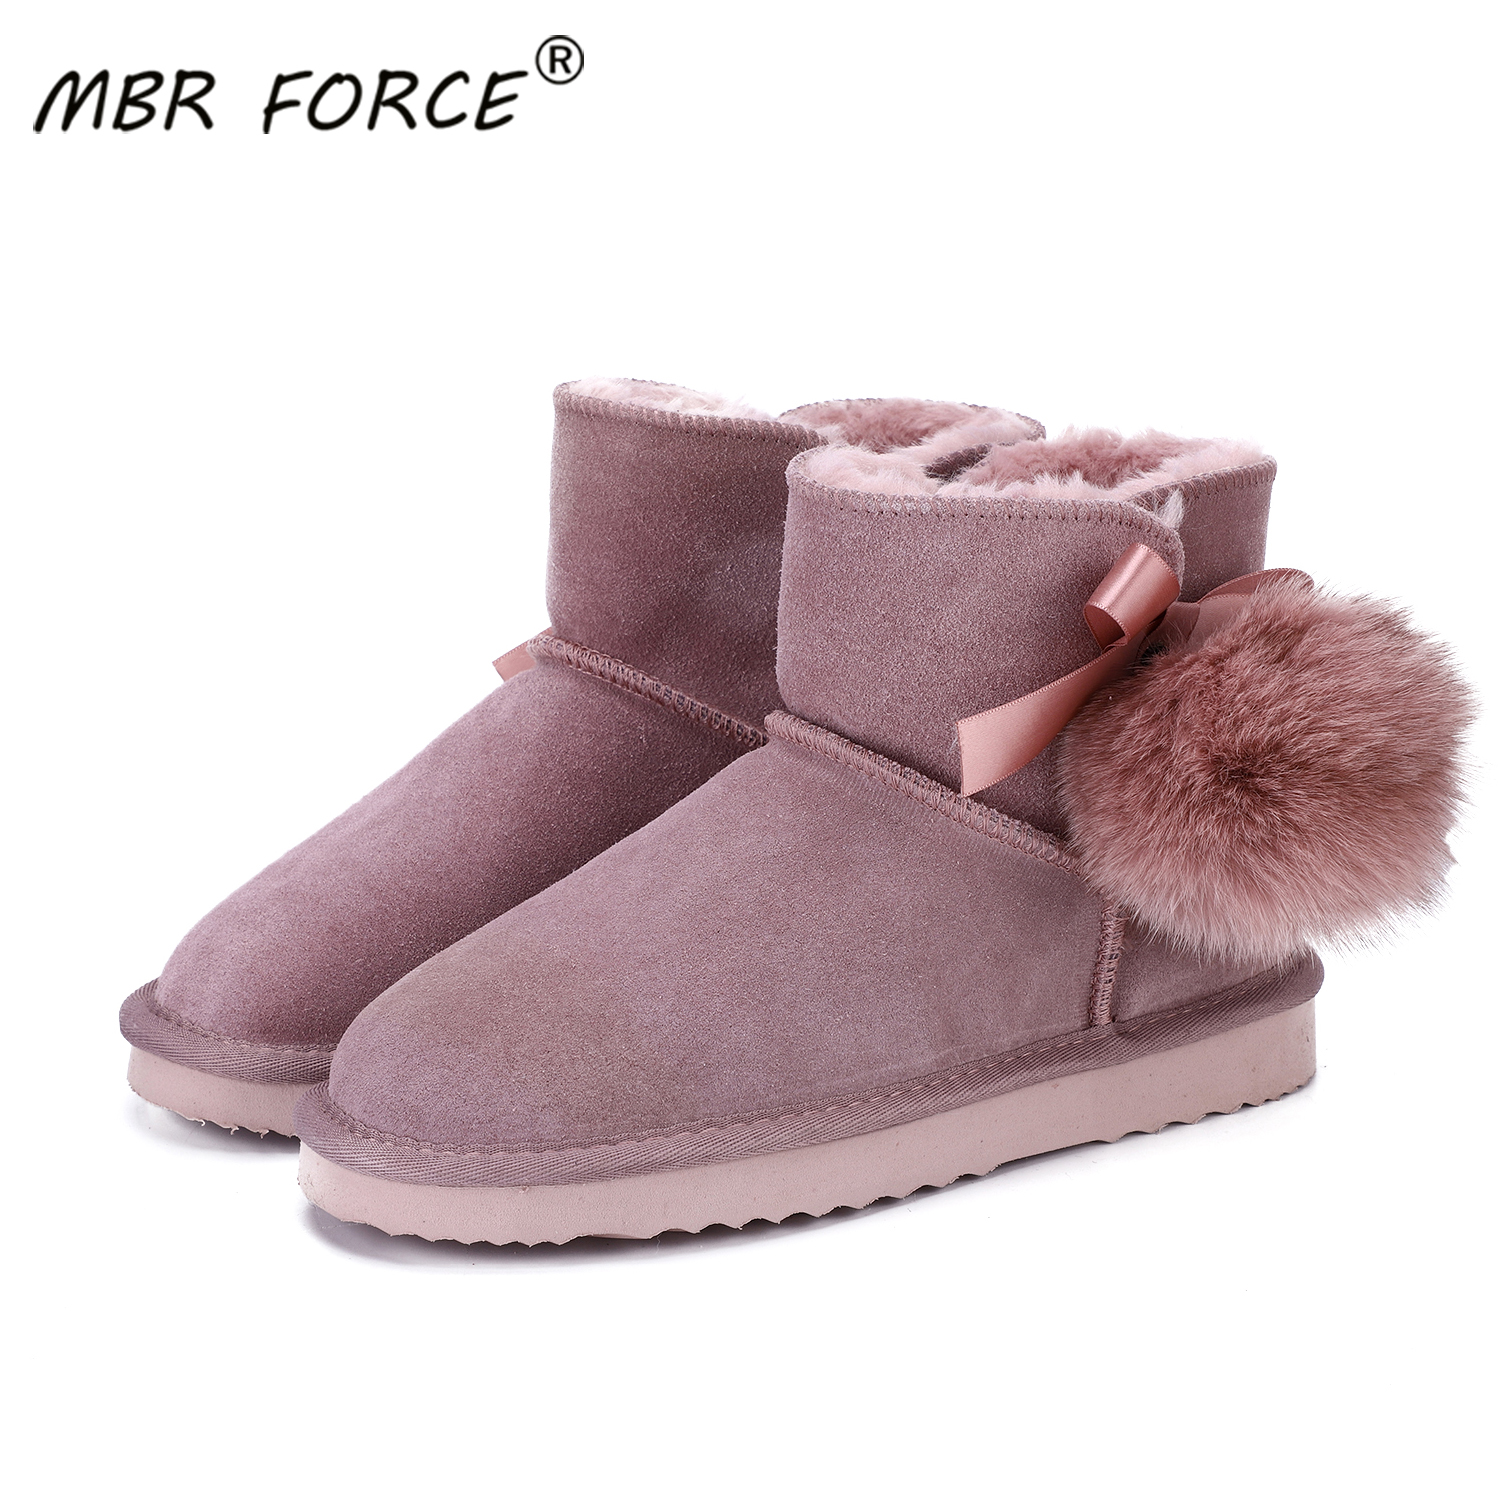 MBR FORCE Australia Women Snow Boots 100% Genuine Cowhide Leather Ankle Boots Warm Winter Boots Woman shoes large size 34-43